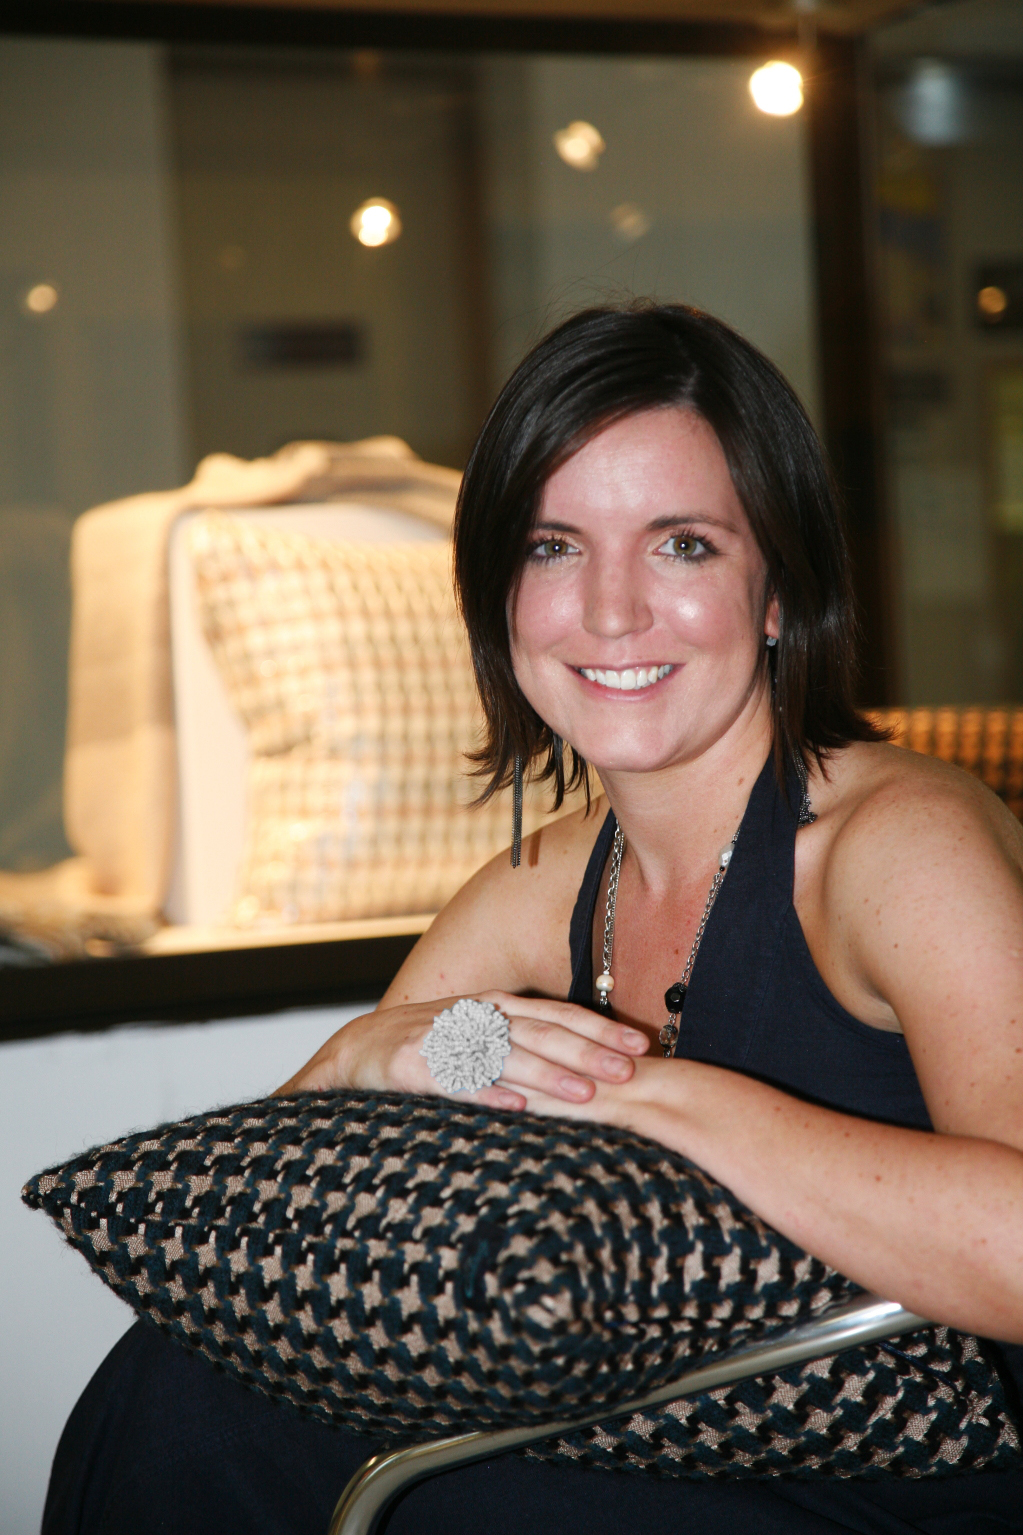 Judith takes to the streets to revive tradition of weaving